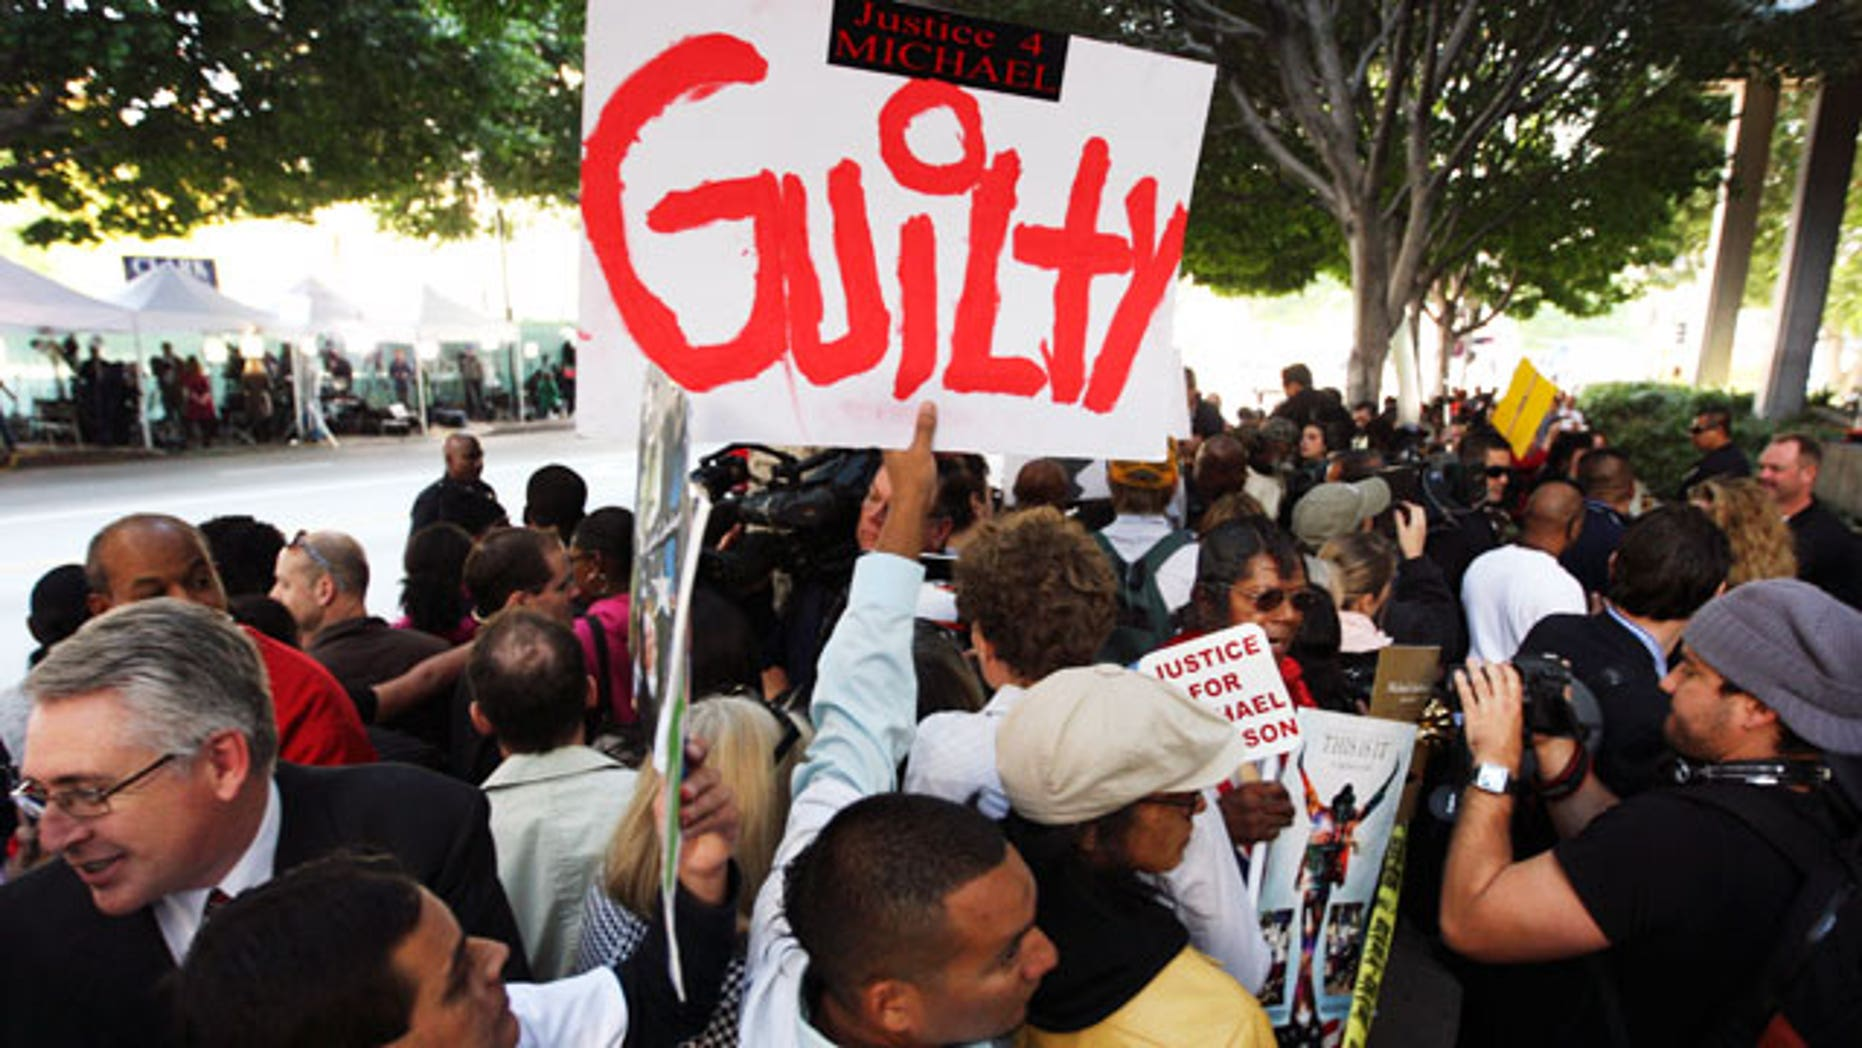 Nov. 7, 2011: Michael Jackson fans celebrate outside the courtroom.